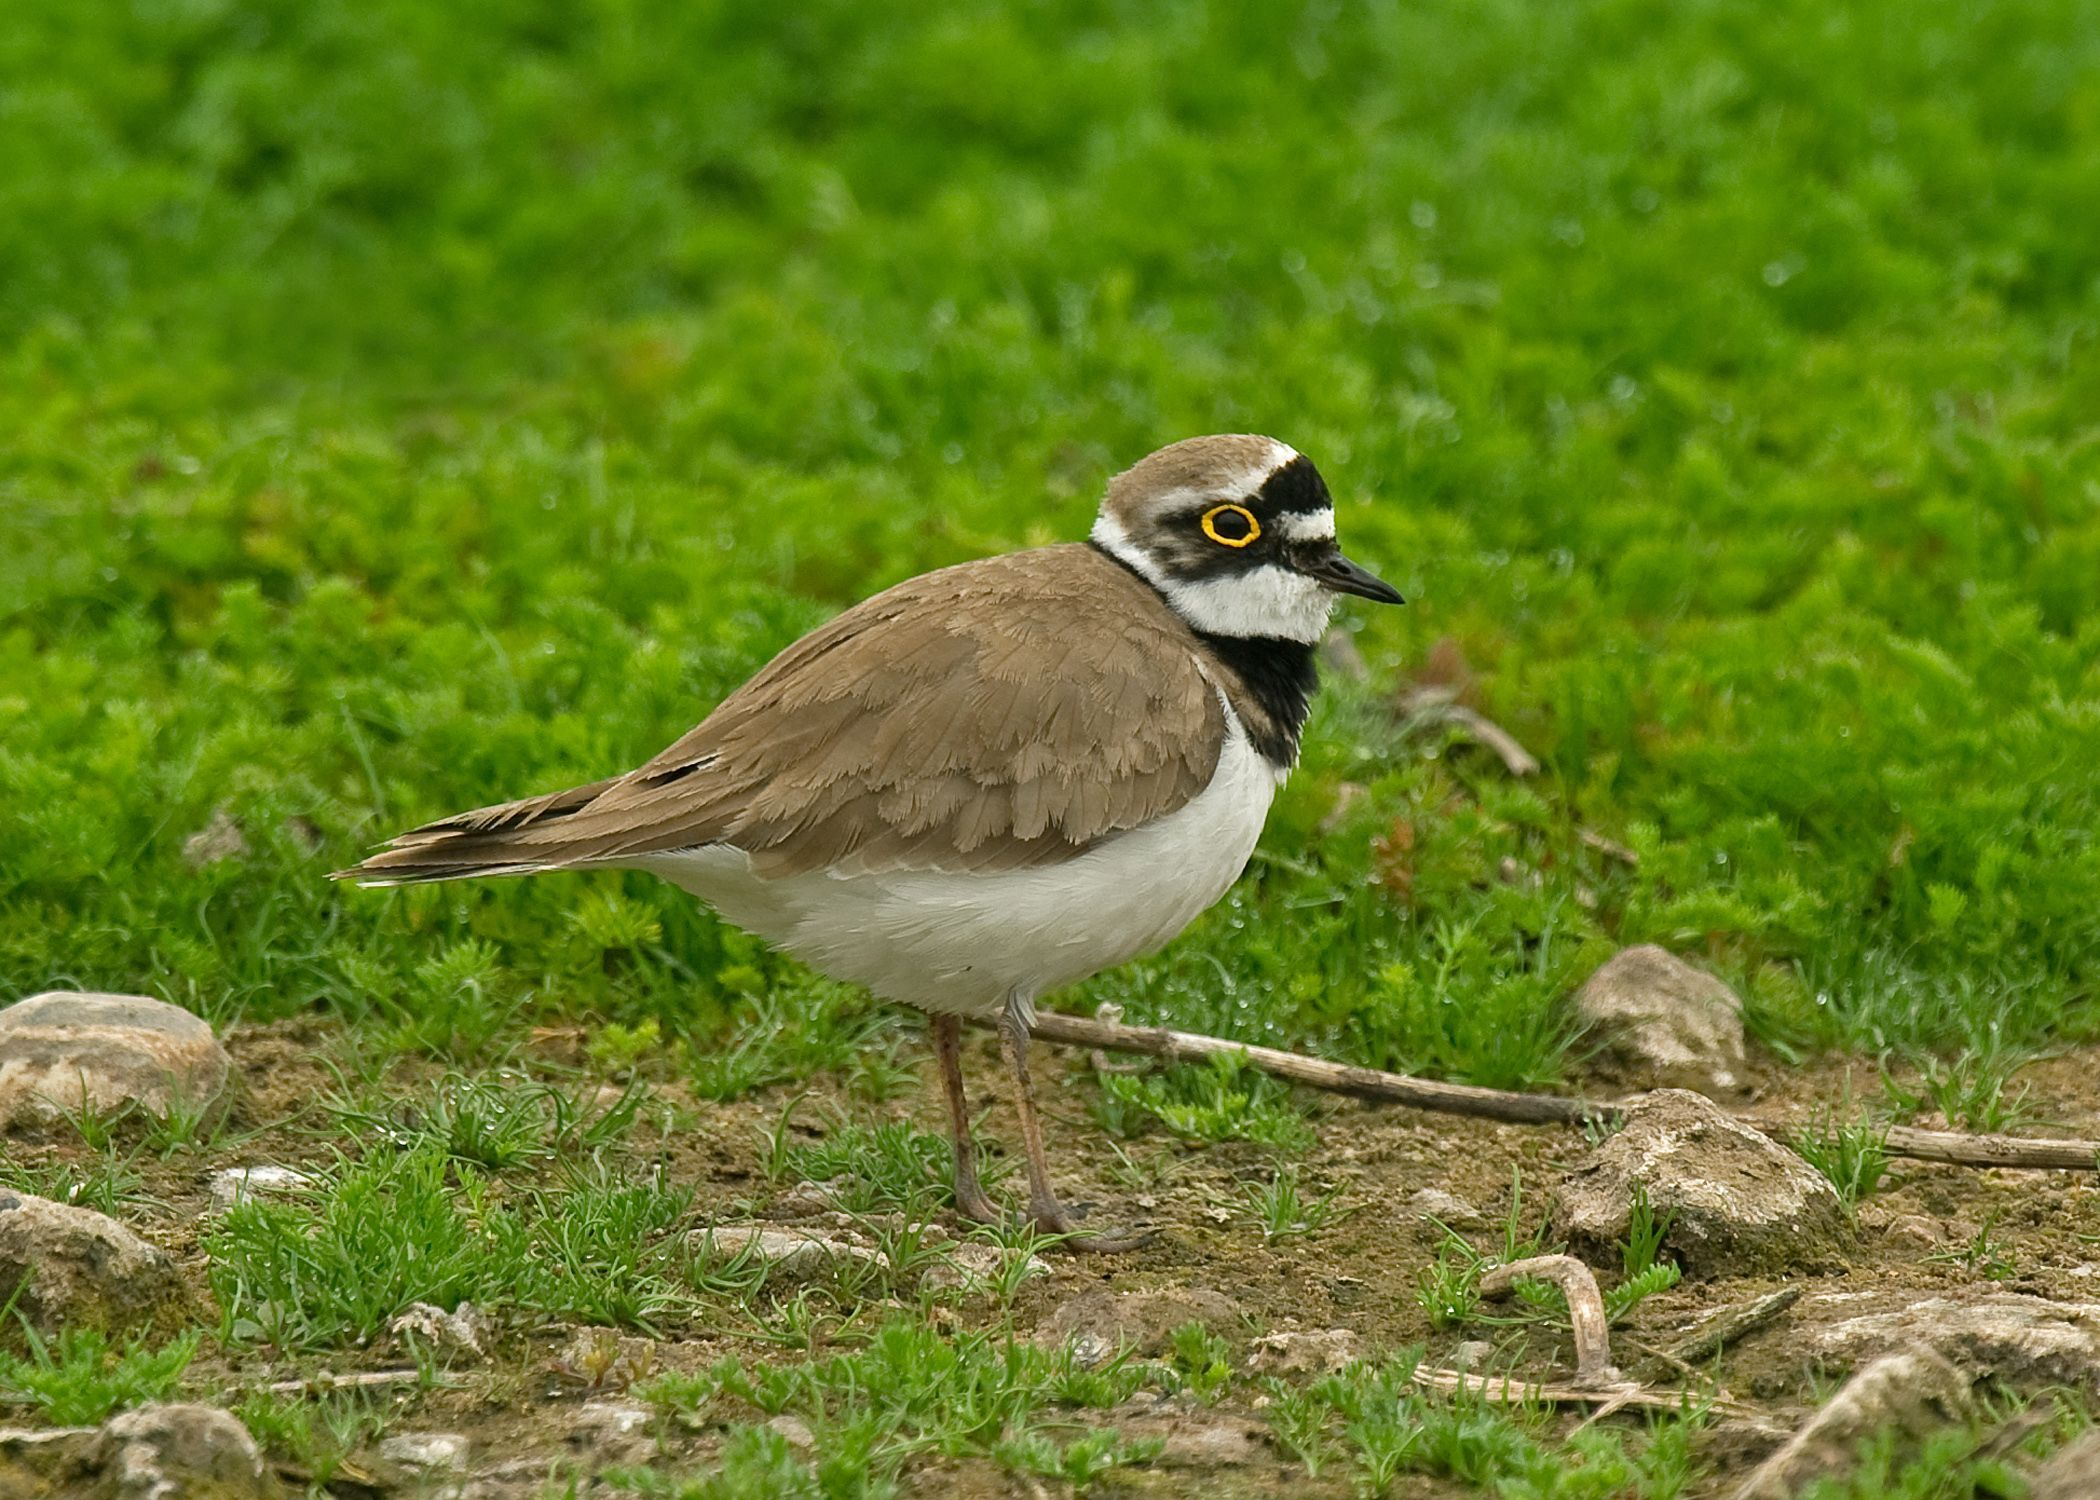 Little Ringed Plover can be seen at many wetland sites around the country, including Seaforth, Lancashire. Photo by Steve Young (www.birdsonfilm.com).